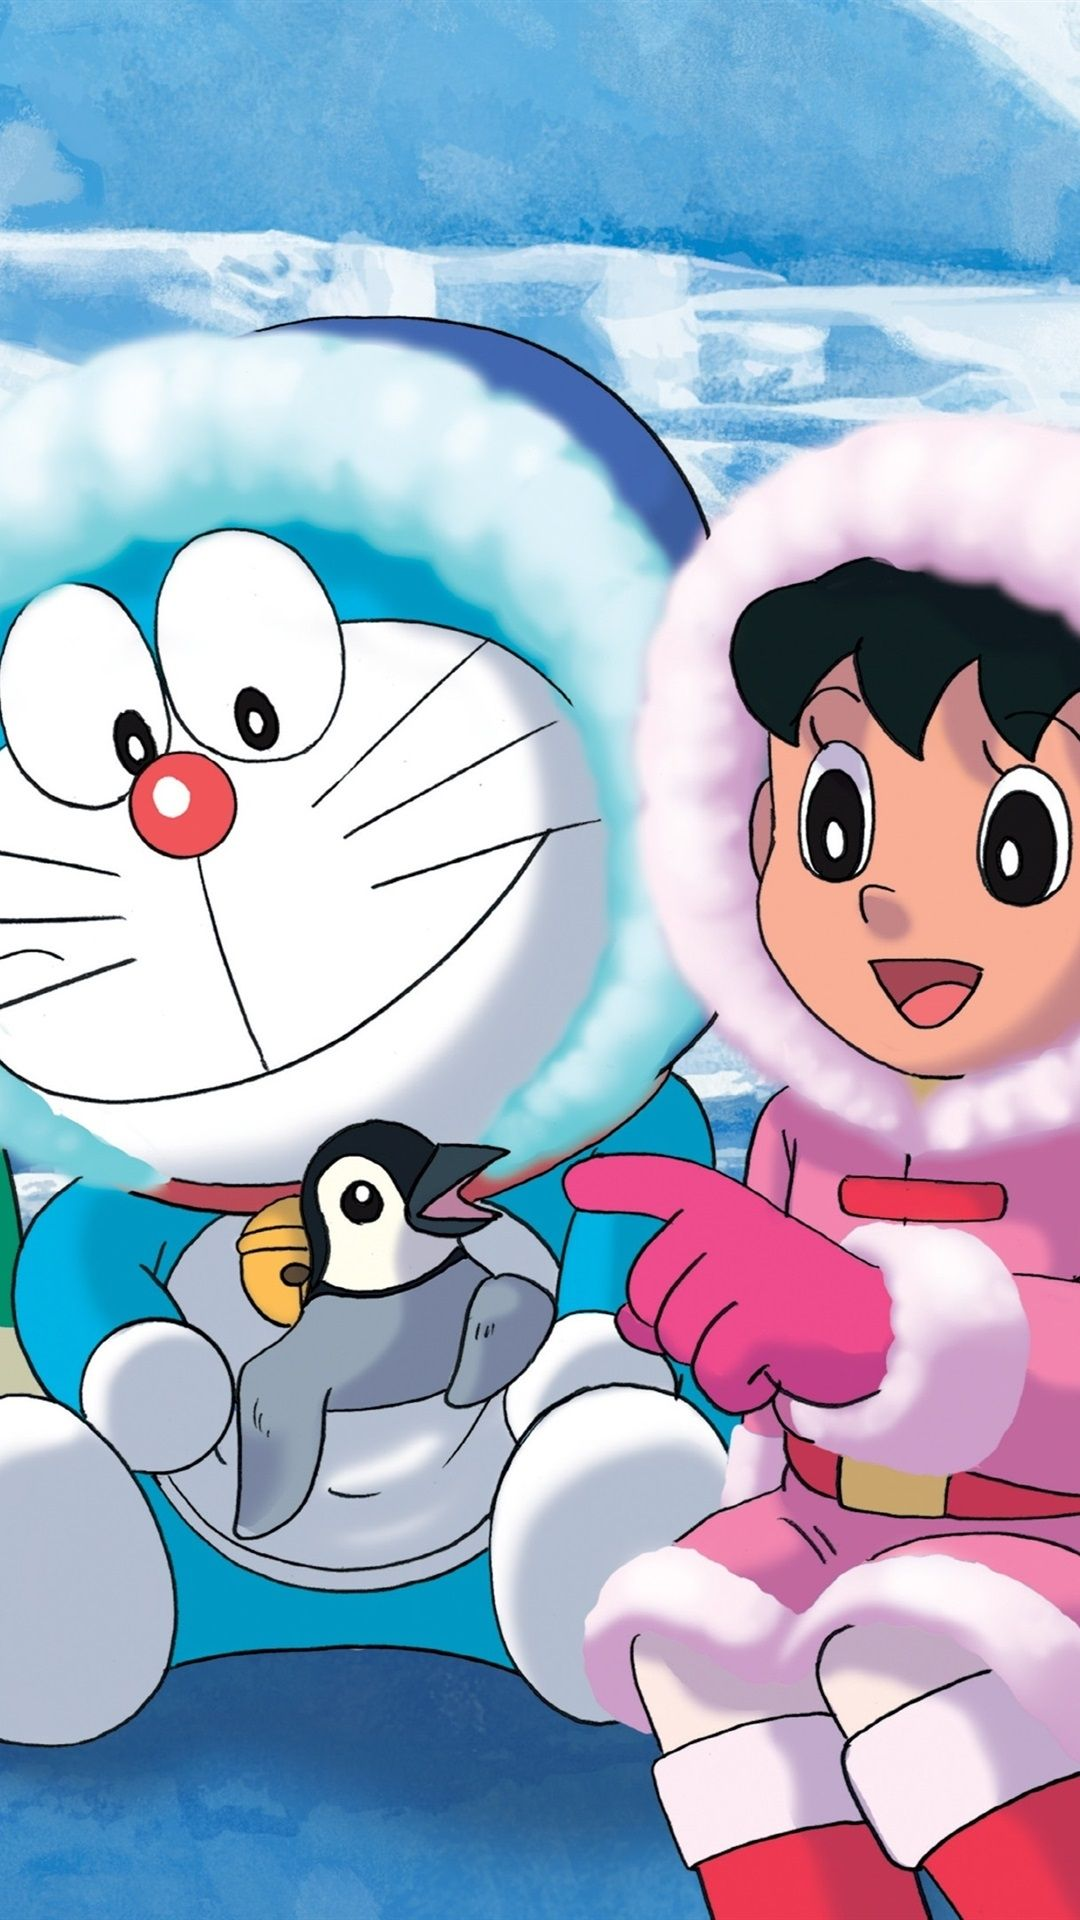 Cute Doraemon Hd Wallpapers